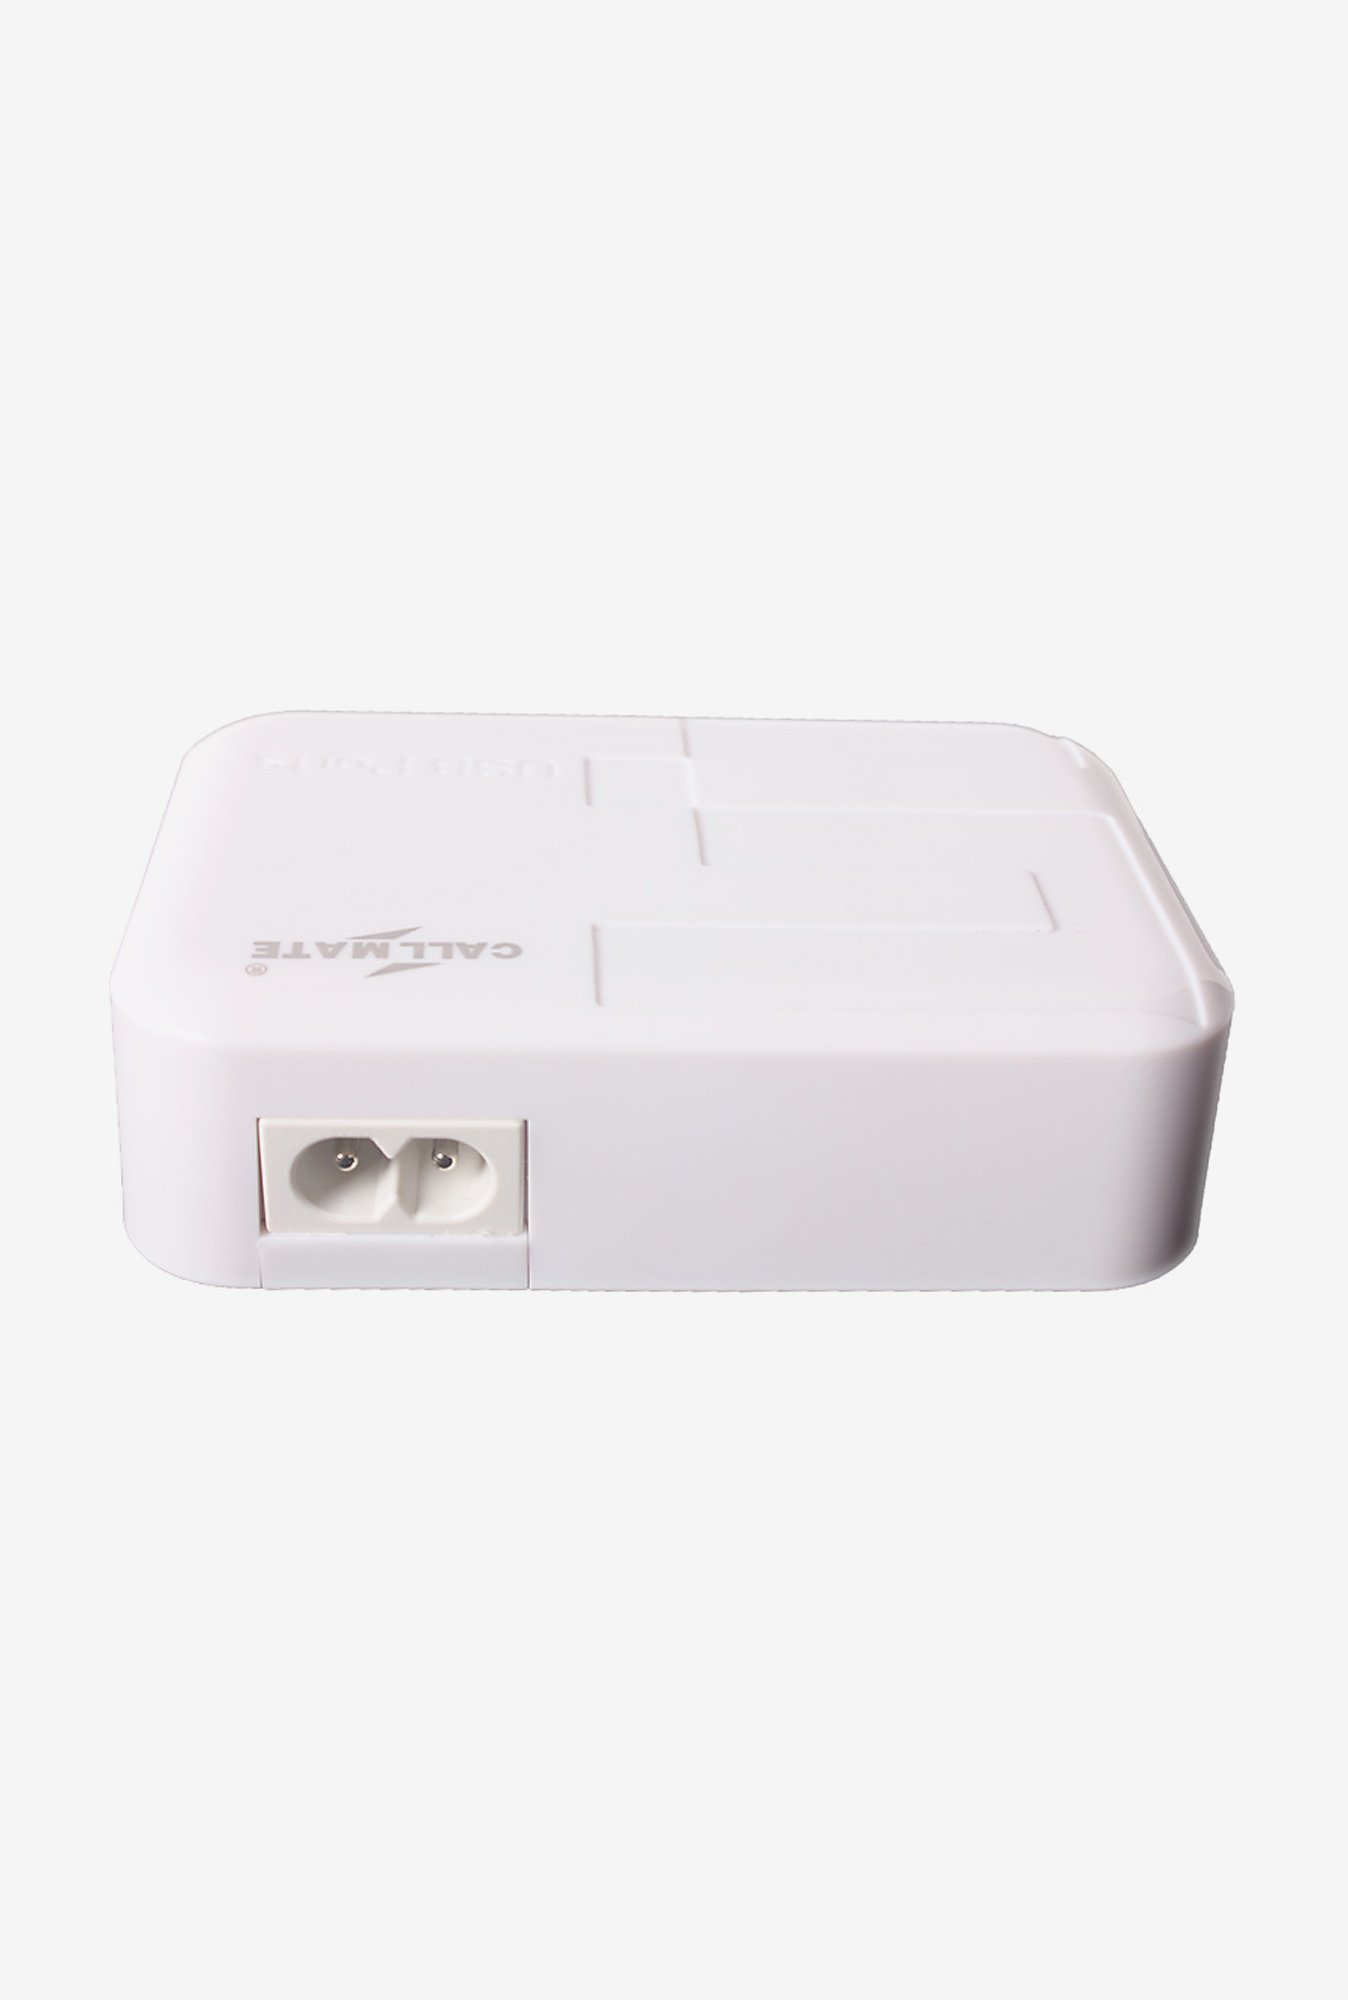 Callmate 5 Port 5.2A USB Charger for iPad and Tablet White